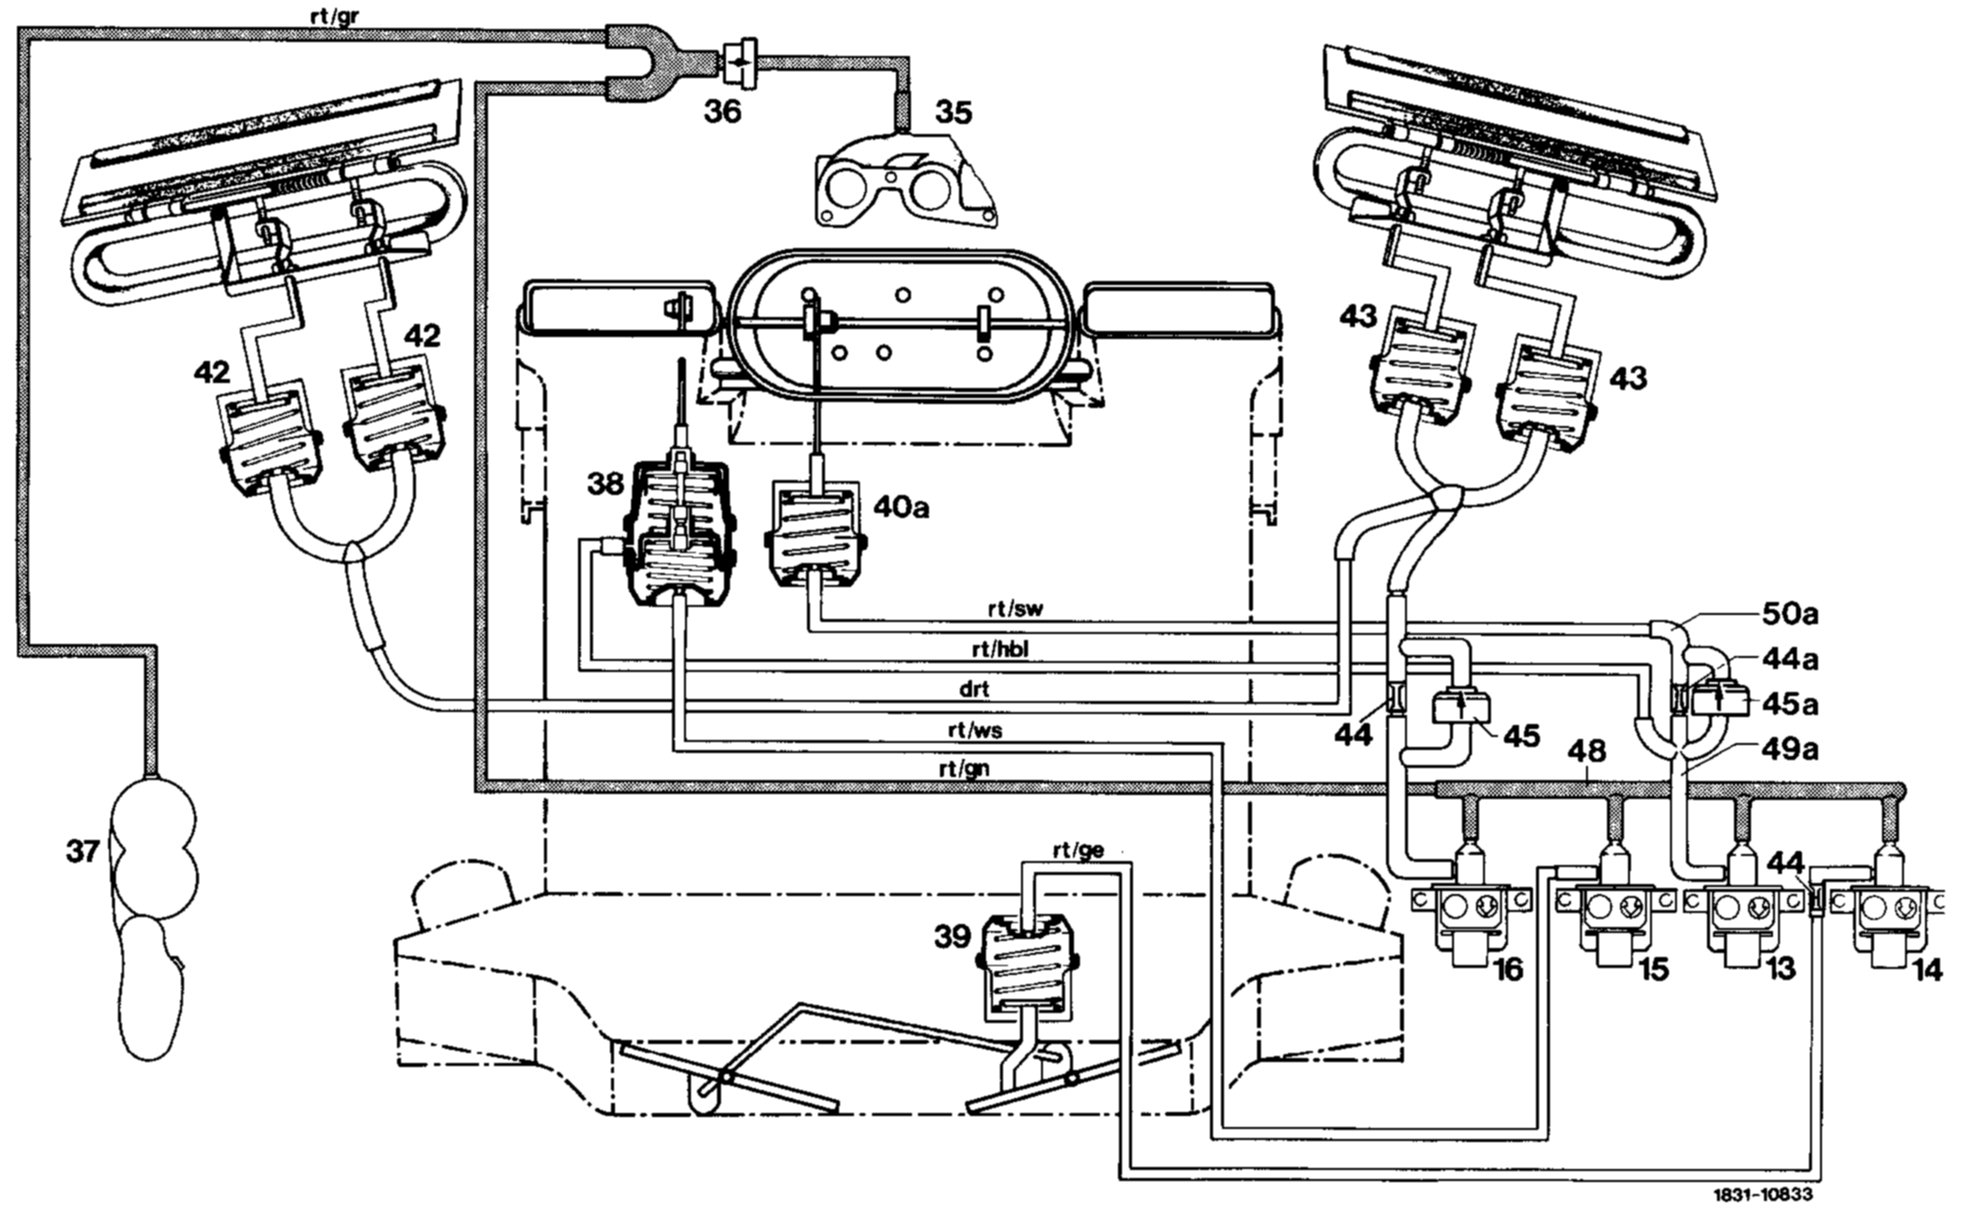 Untitled on Mercedes Benz 1983 Vacuum Line Diagram